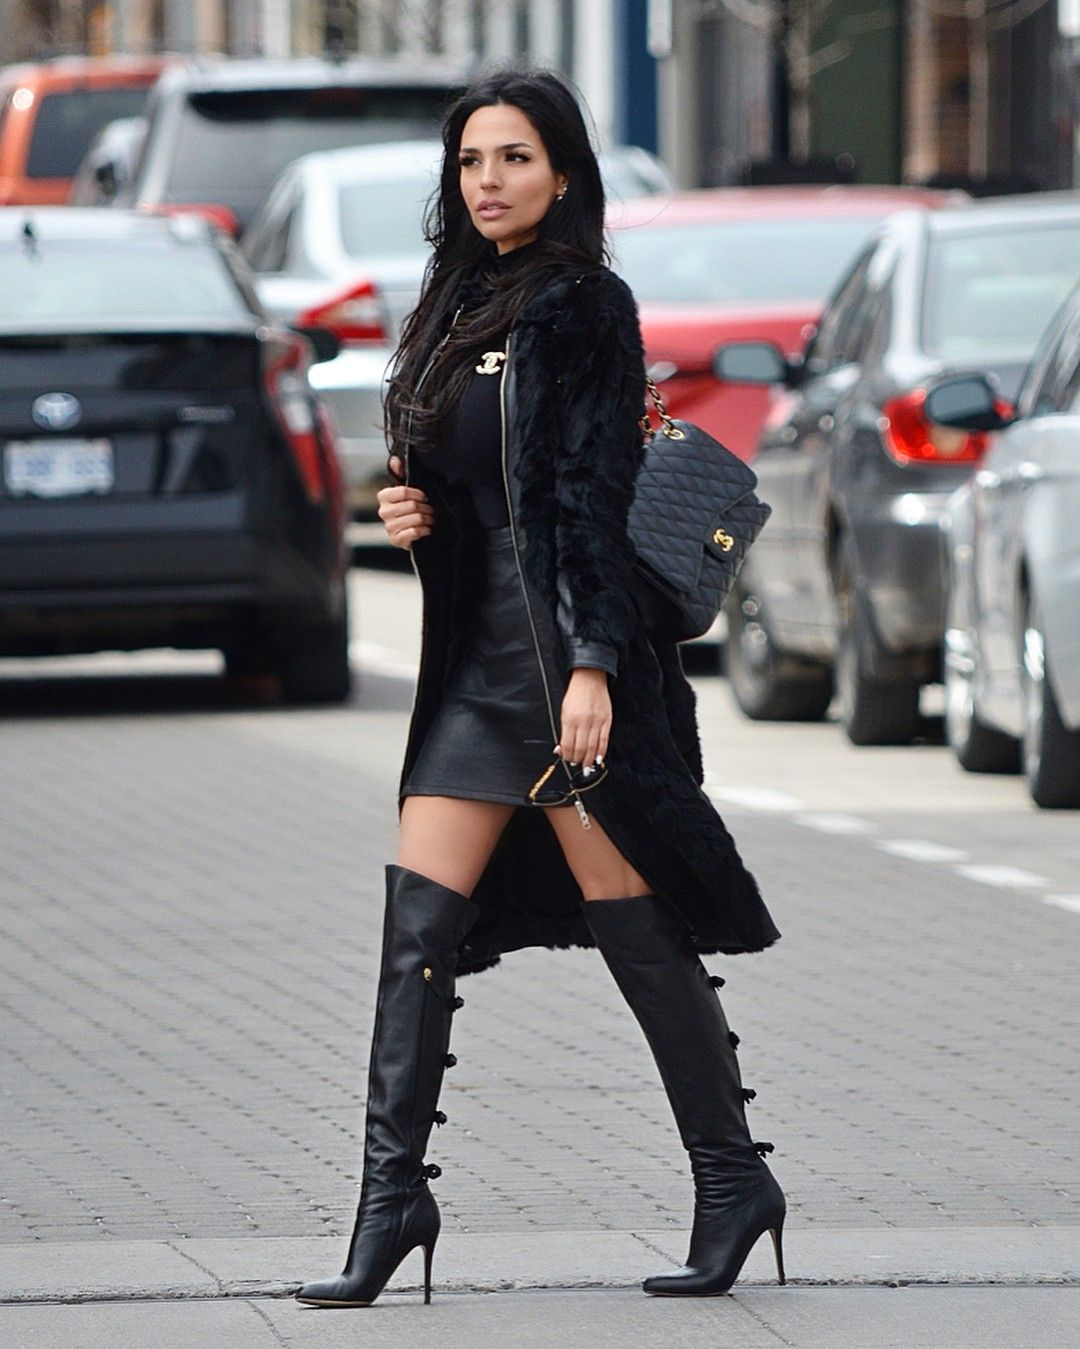 Pin By Mela K On Styleee In 2019 Fashion Boots Black